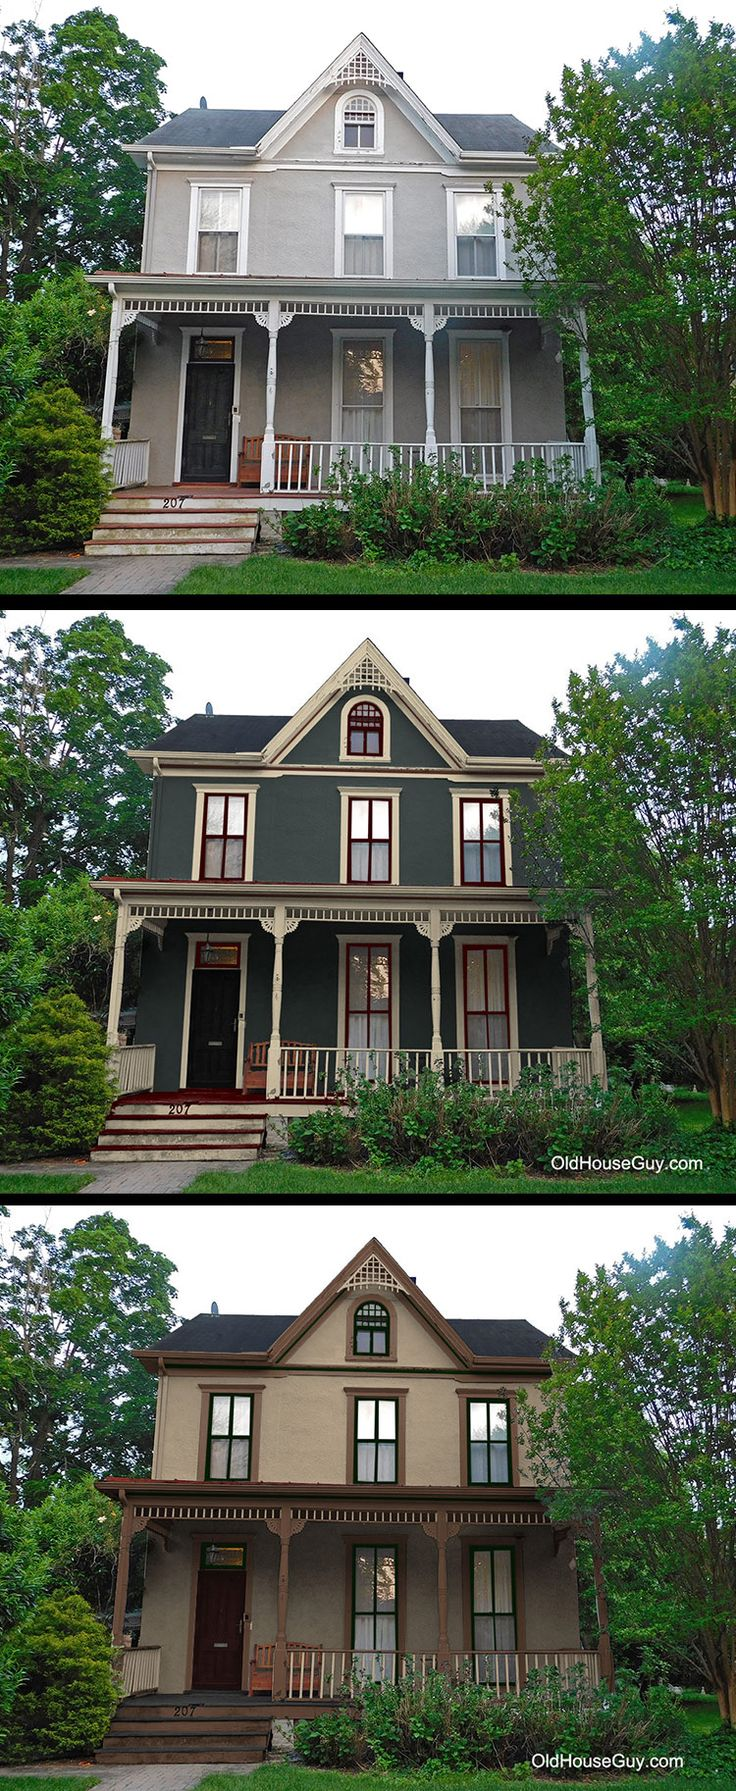 1000 ideas about stucco houses on pinterest stucco - How to paint exterior stucco house ...